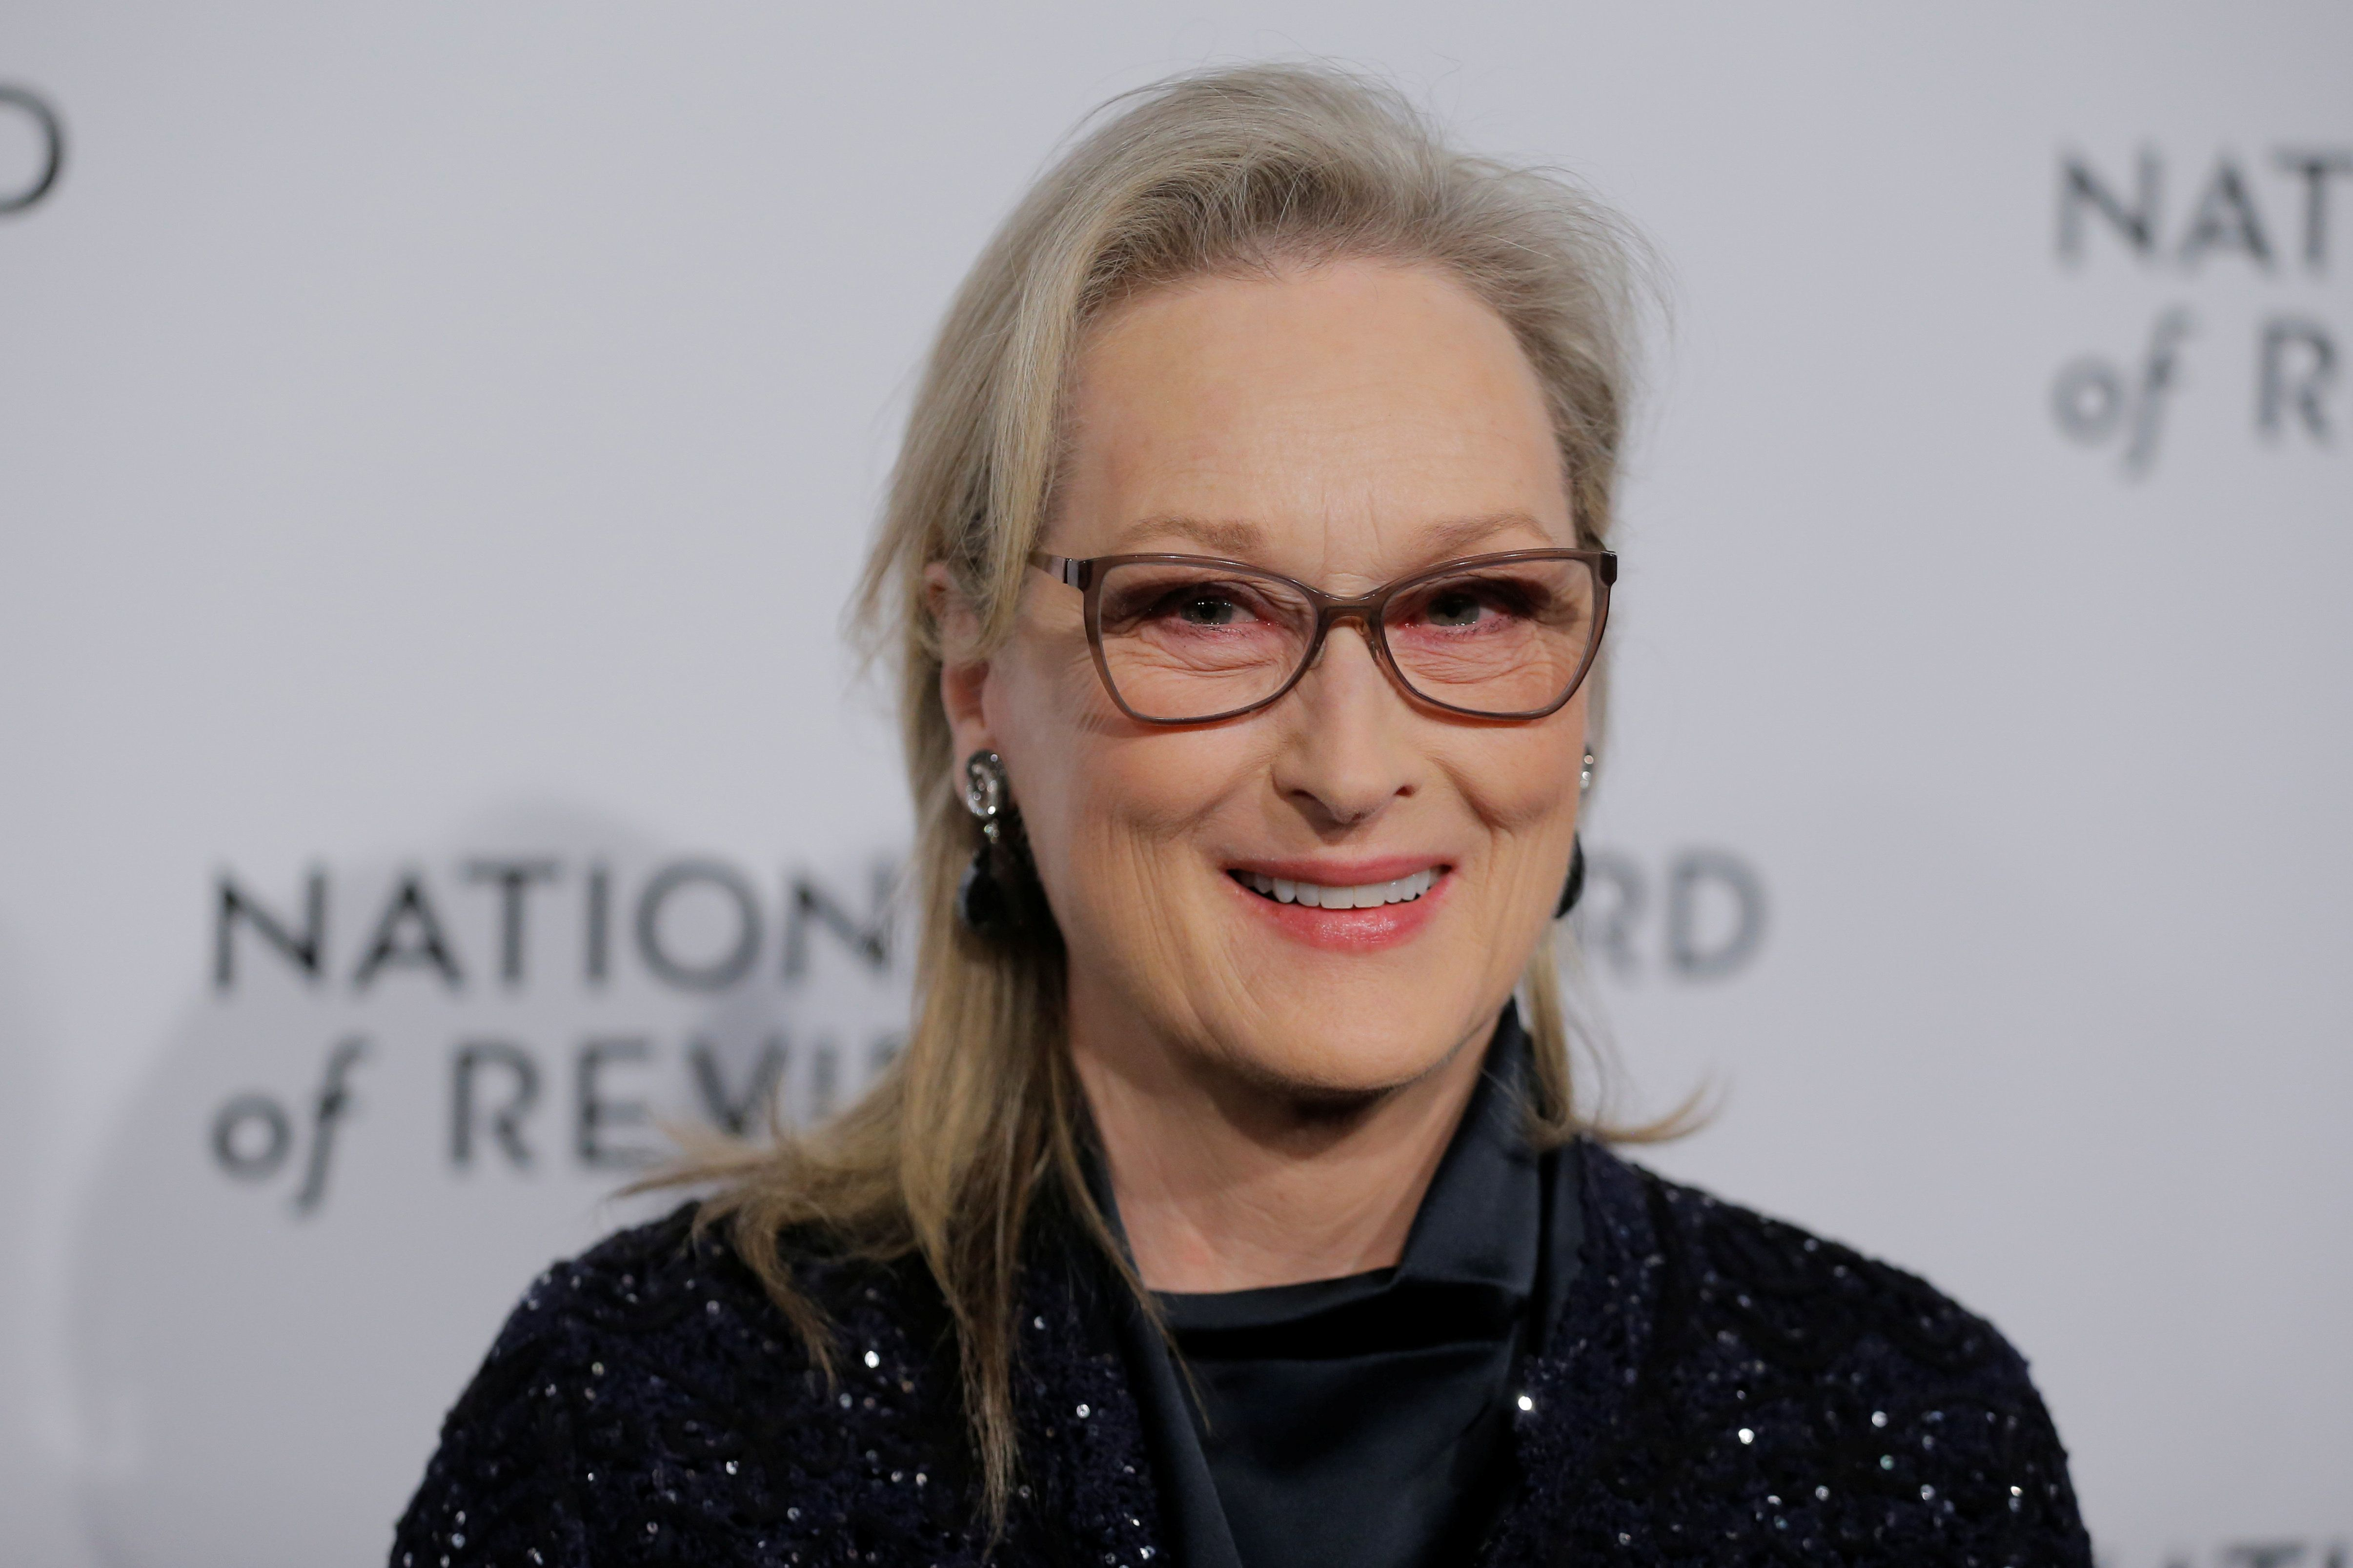 Actor Meryl Streep arrives with Kate Capshaw to attend the National Board of Review awards gala in New York, U.S., January 9, 2018.  REUTERS/Lucas Jackson